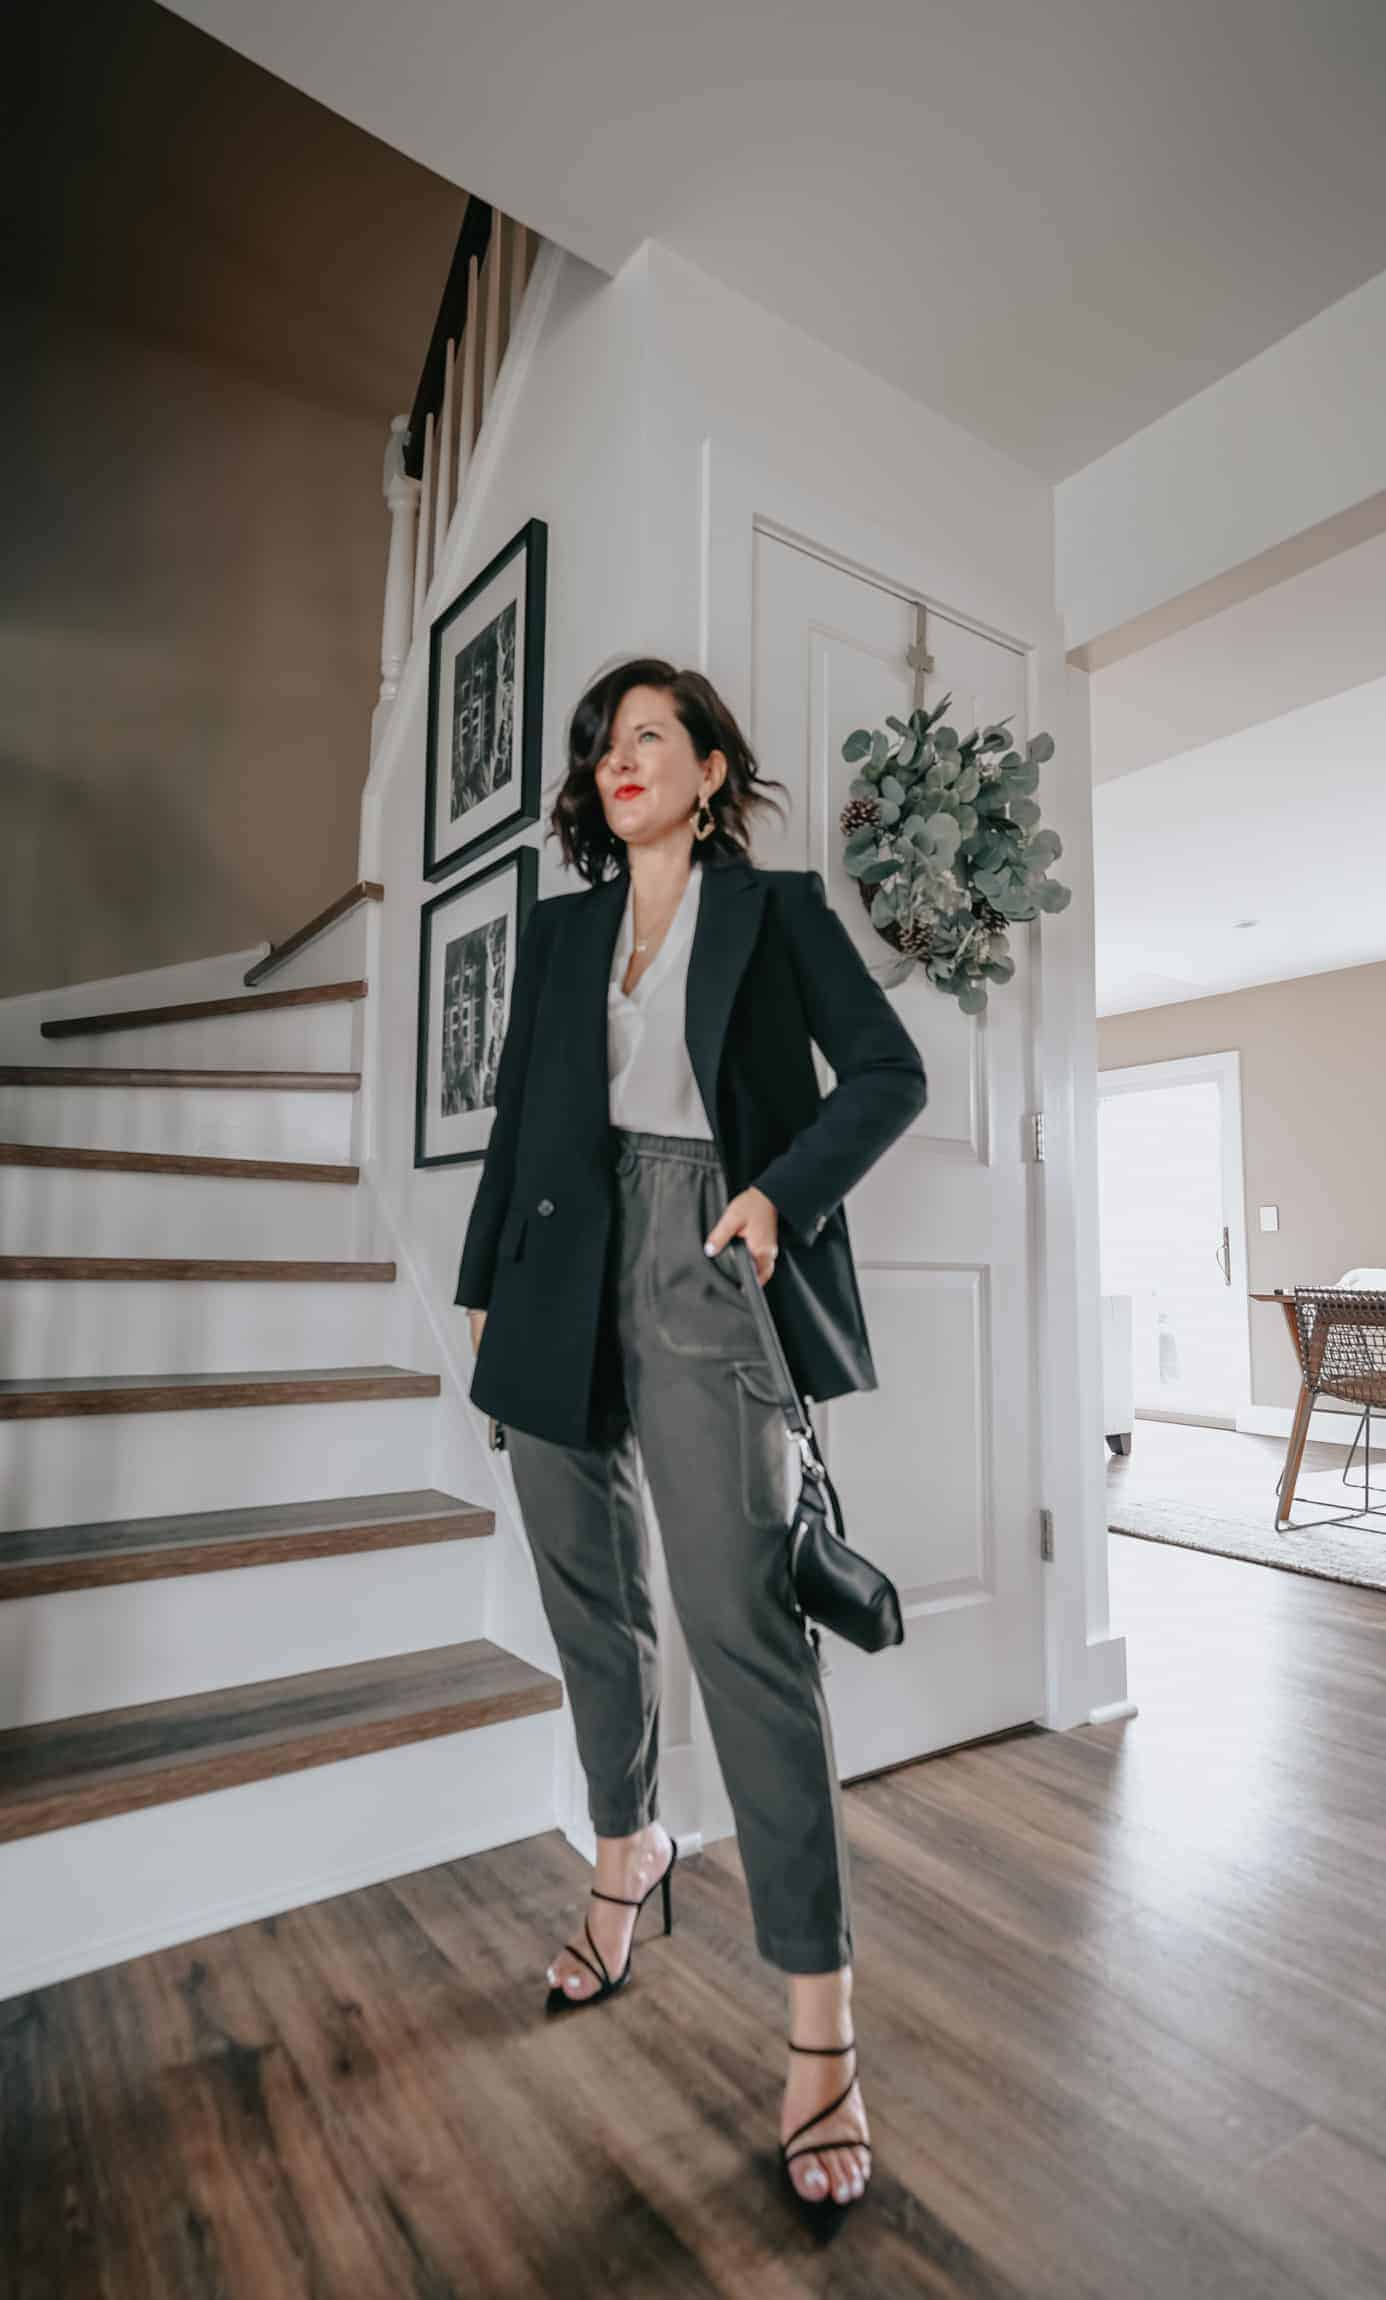 OLIVE CARGO PANTS OUTFITS FOR WOMEN - How cute are these olive cargo pants? I hope you love them as much as we do! Today, we're sharing 6 really cargo pant outfit ideas. These are the perfect spring and summer outfits. All 6 looks are perfect for now and later! #cargopants #olivecargopants #summeroutfits #casualoutfits